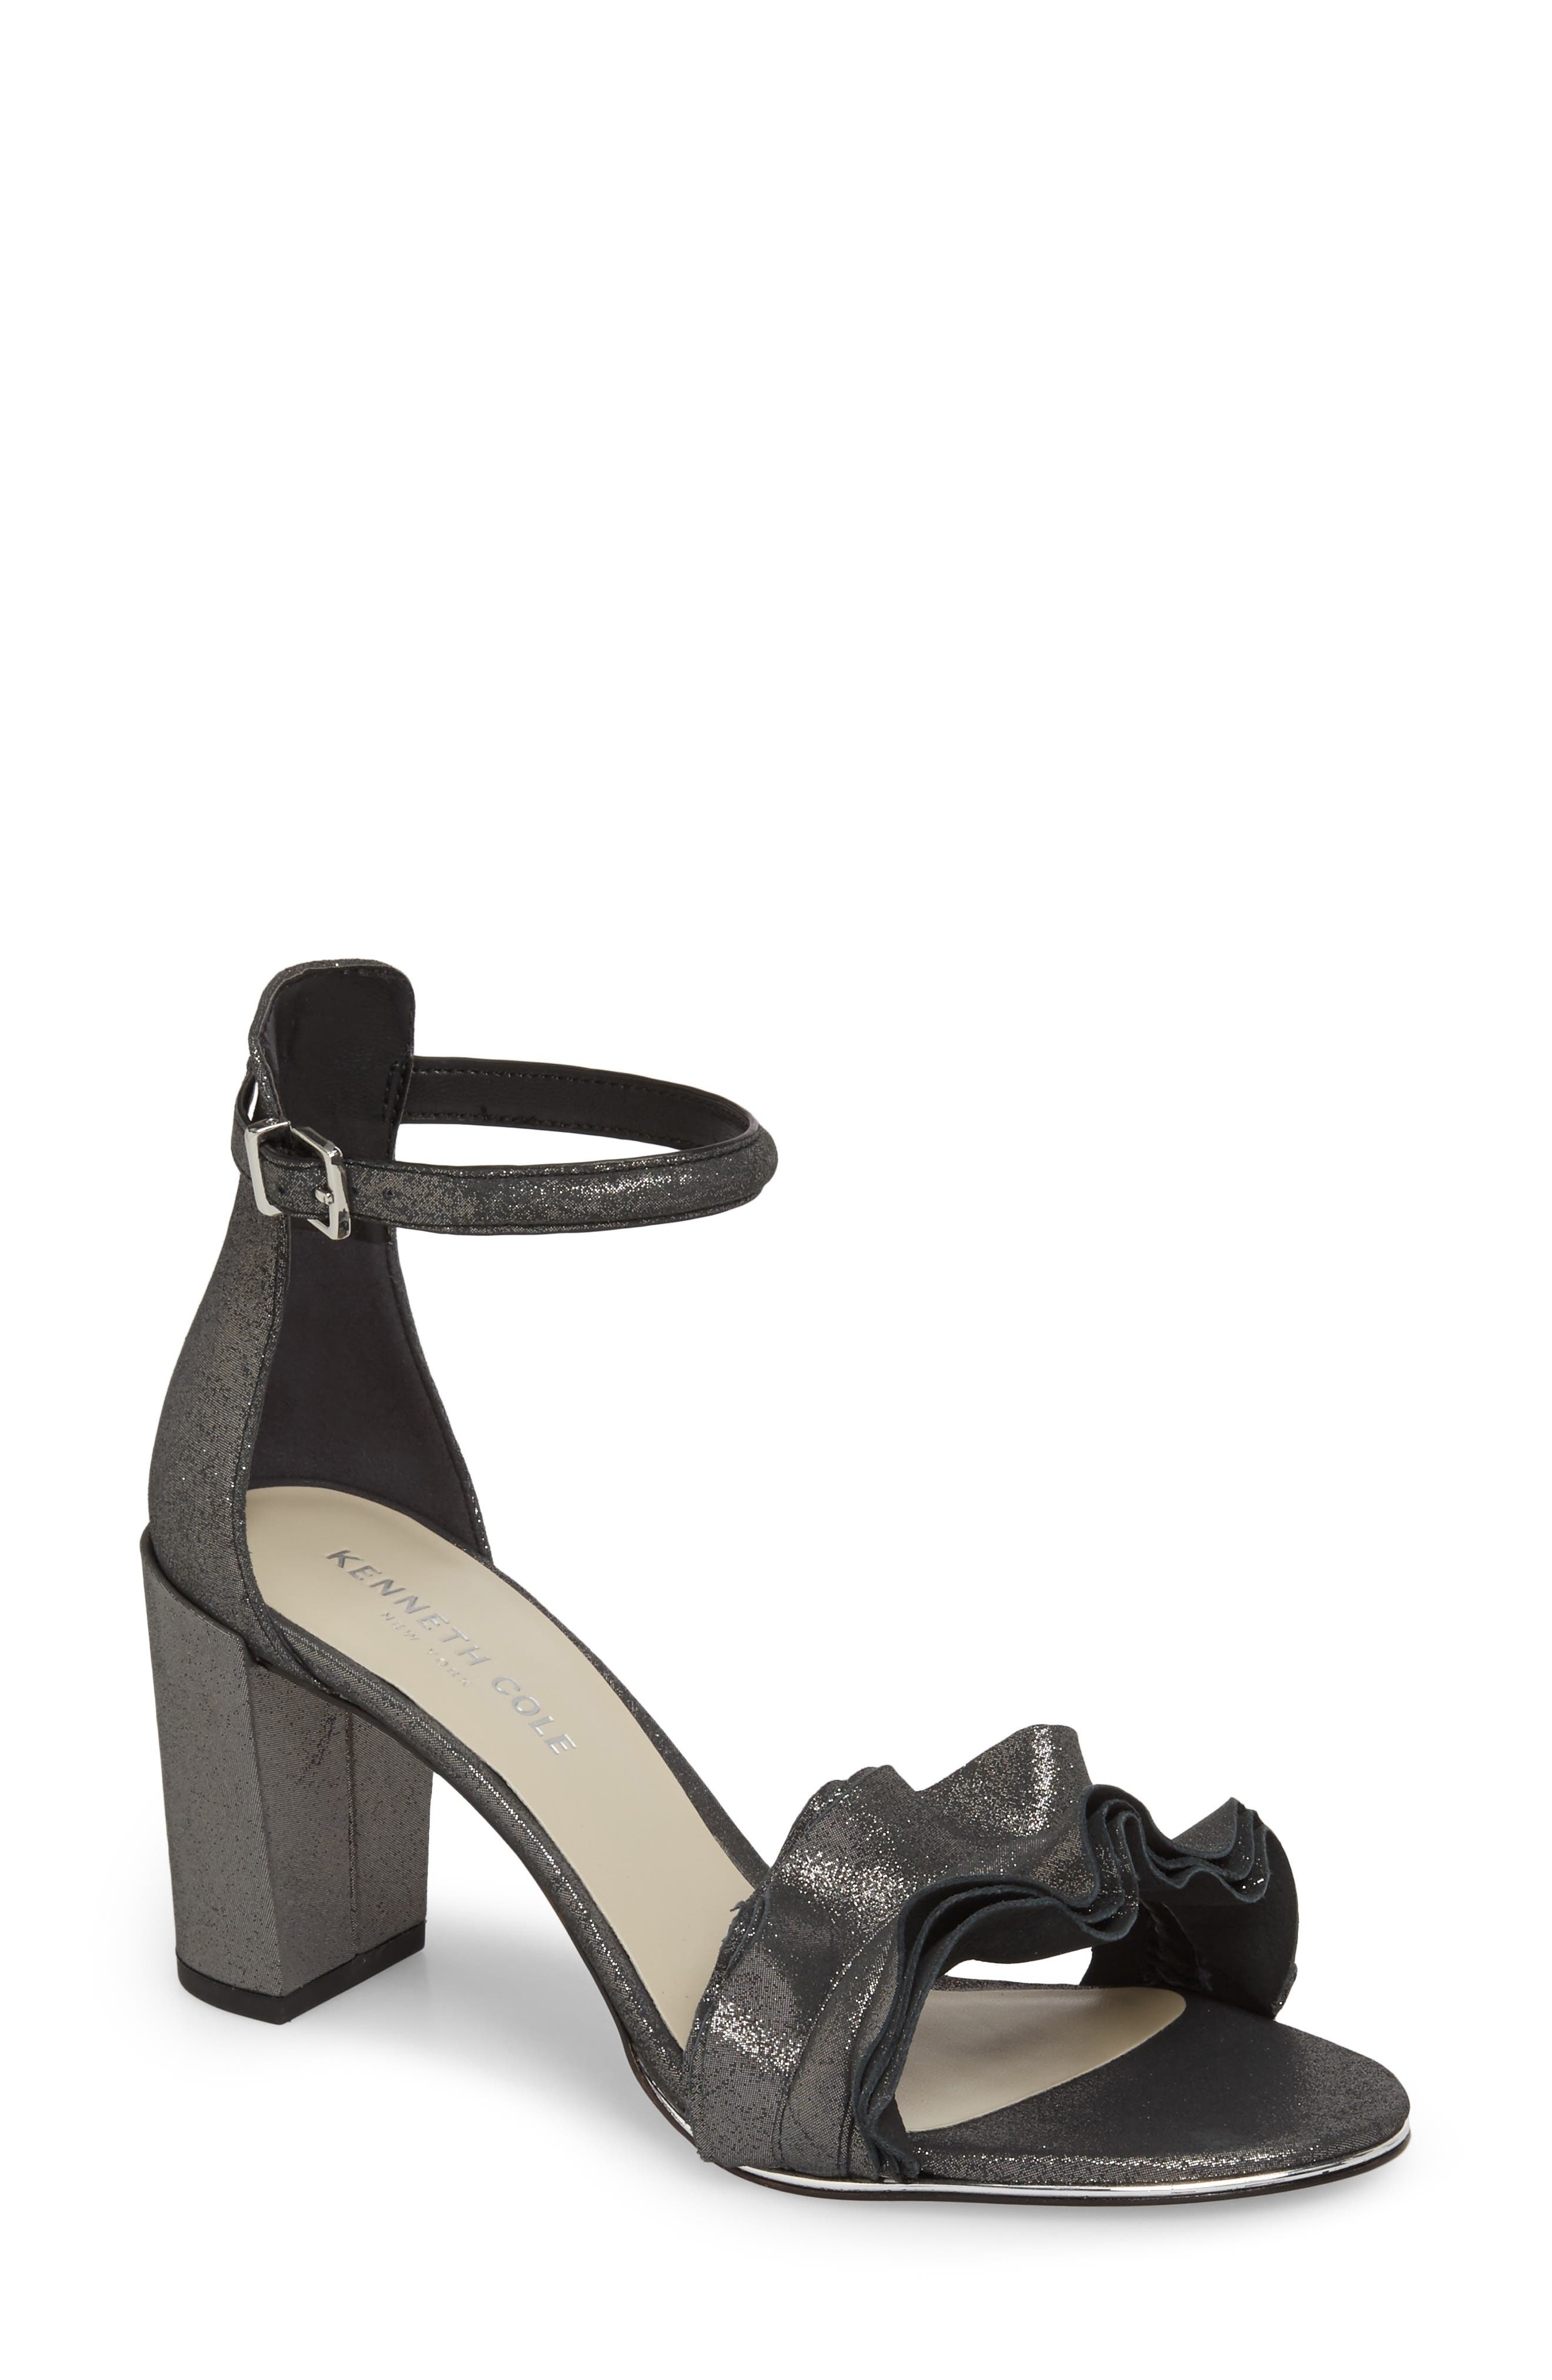 Alternate Image 1 Selected - Kenneth Cole New York Langley Sandal (Women)